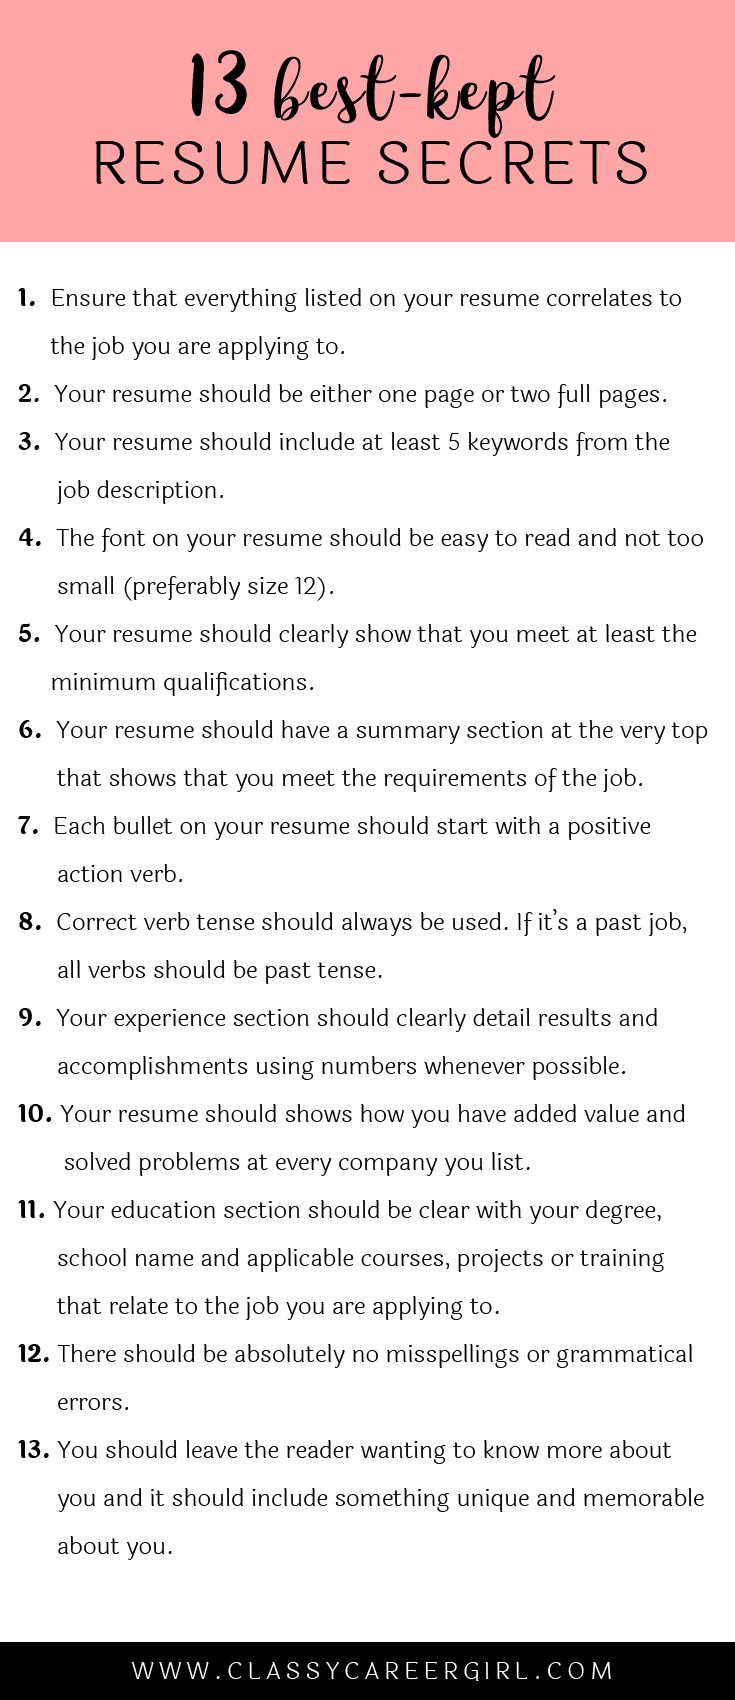 Opposenewapstandardsus  Outstanding  Ideas About Resume On Pinterest  Cv Format Resume Cv And  With Remarkable Some Hiring Managers Will Toss Your Resume Out If You Dont Know These  With Beauteous Resume For New Graduate Also Creative Marketing Resumes In Addition Resume For Manager And Security Clearance Resume As Well As Resume For College Students With No Experience Additionally Professional Statement Resume From Pinterestcom With Opposenewapstandardsus  Remarkable  Ideas About Resume On Pinterest  Cv Format Resume Cv And  With Beauteous Some Hiring Managers Will Toss Your Resume Out If You Dont Know These  And Outstanding Resume For New Graduate Also Creative Marketing Resumes In Addition Resume For Manager From Pinterestcom